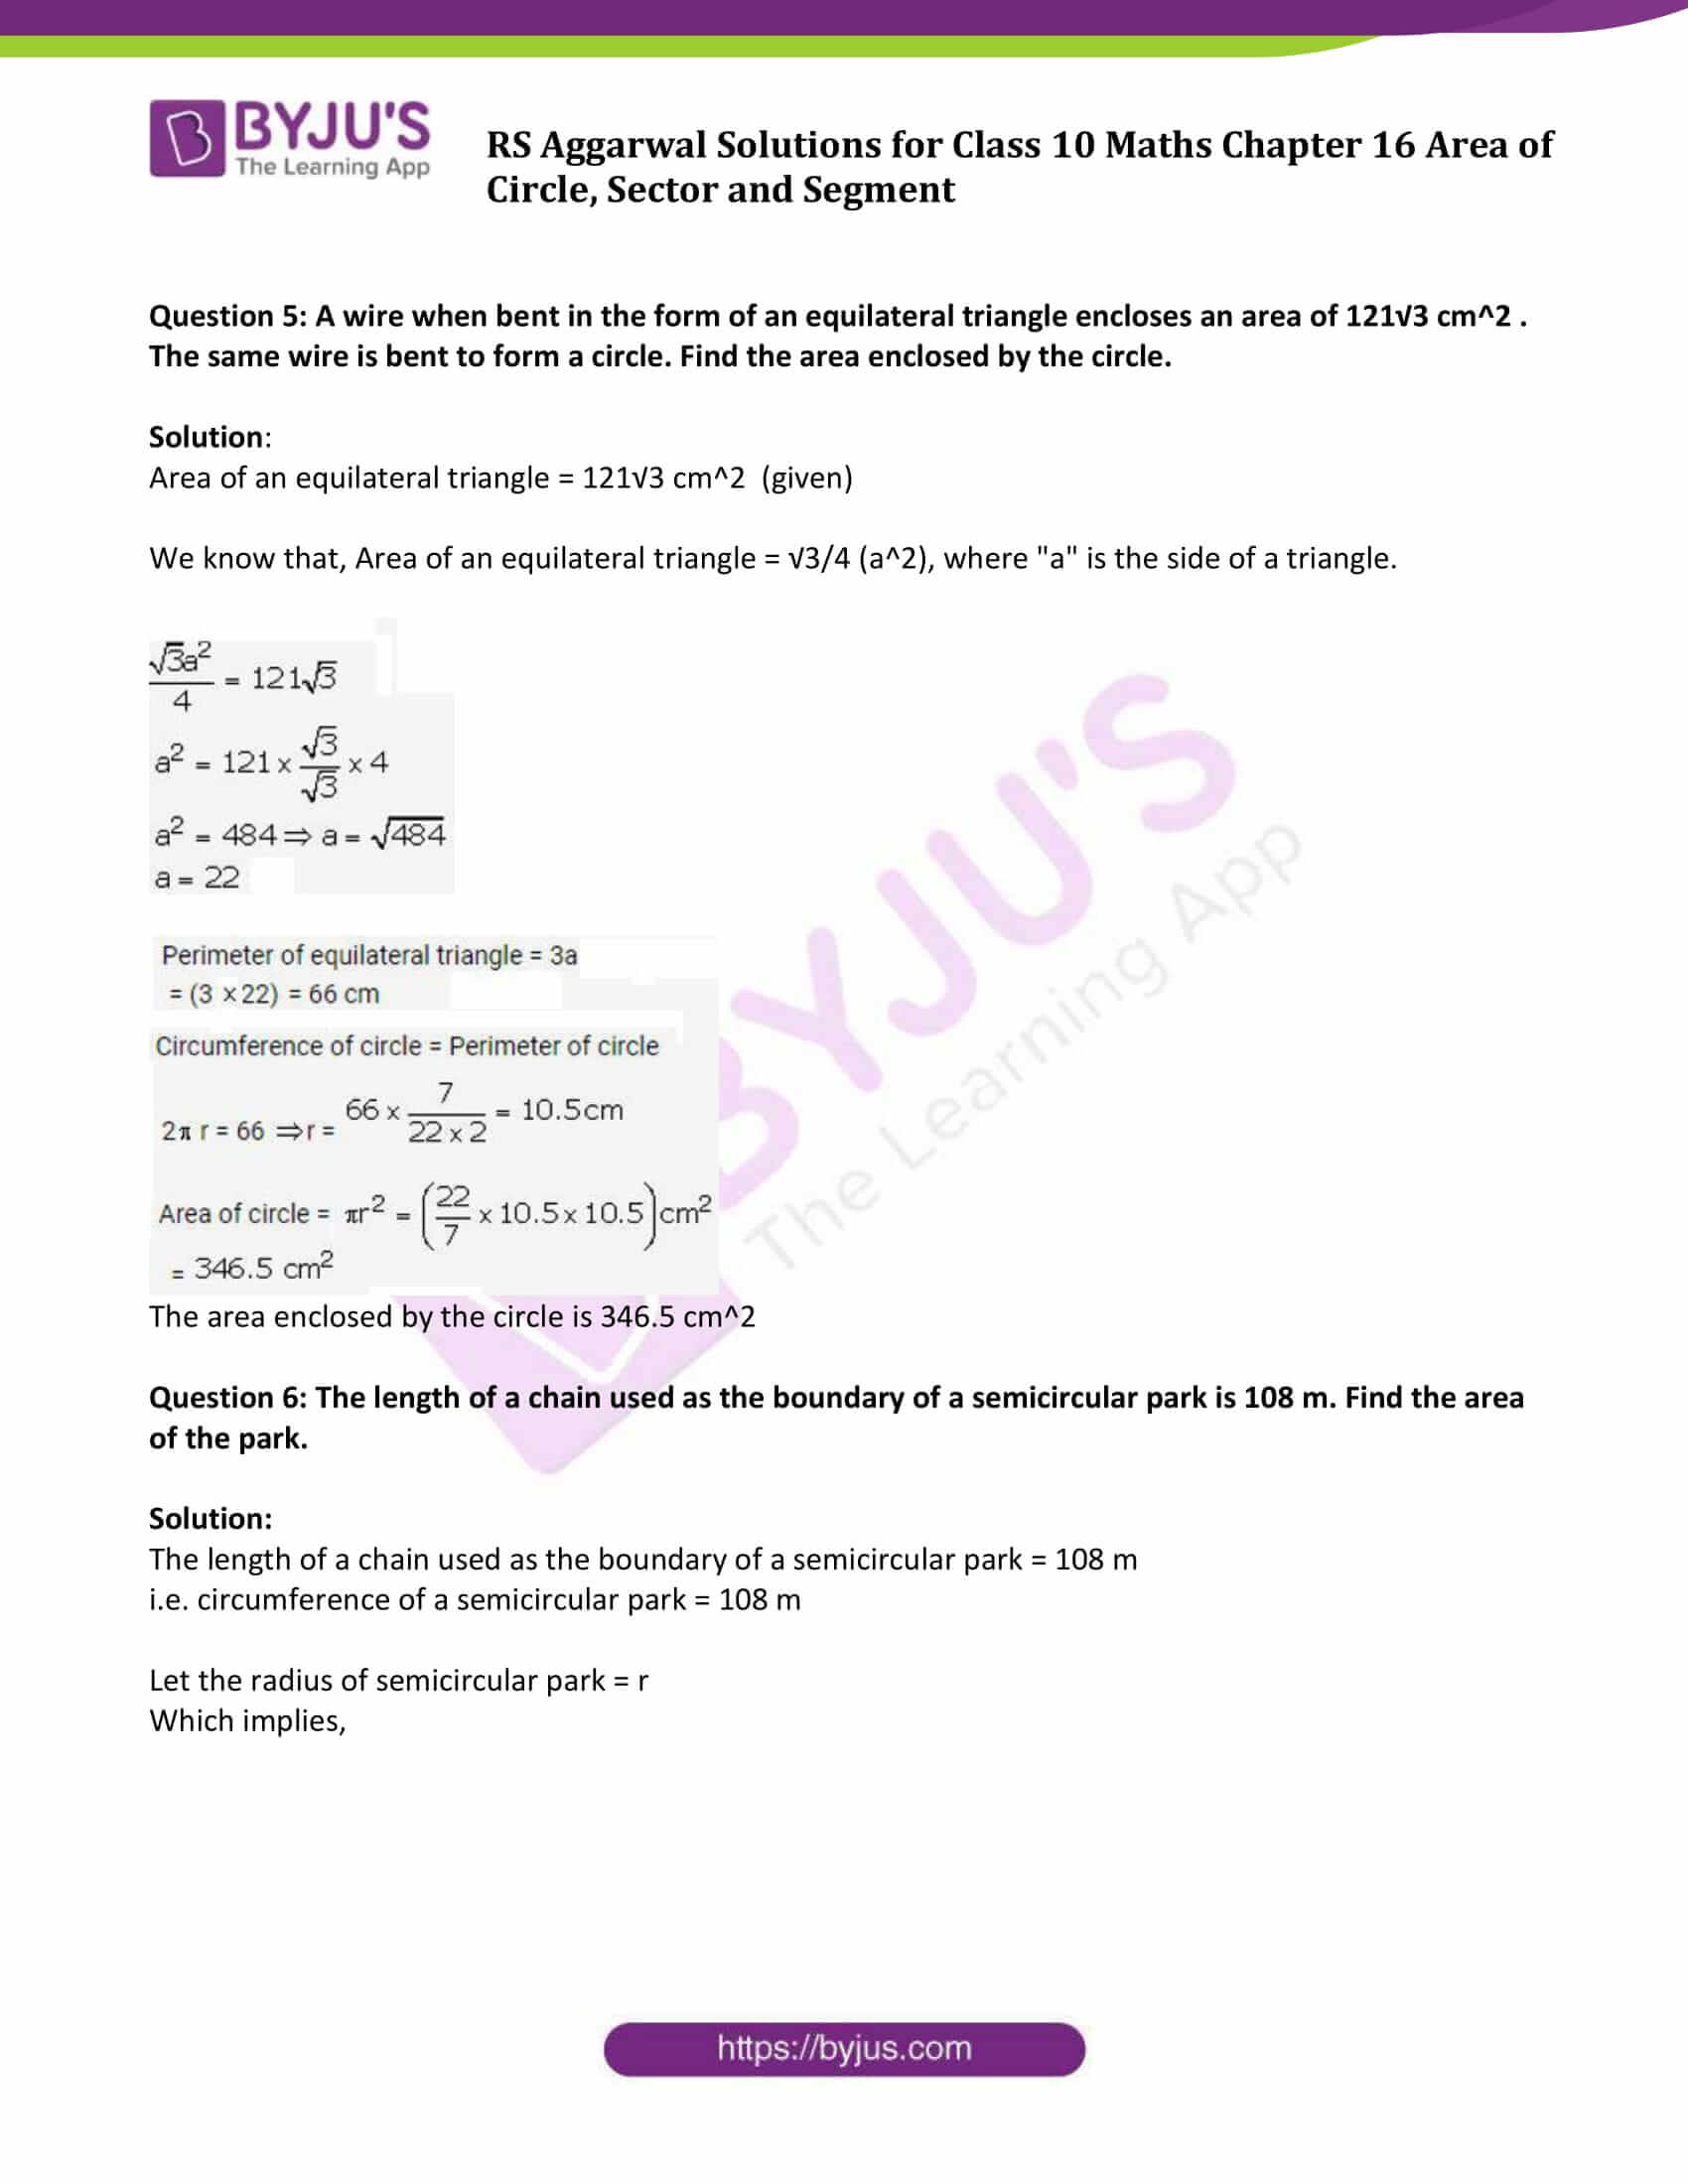 RS Aggarwal Sol class 10 Maths Chapter 16